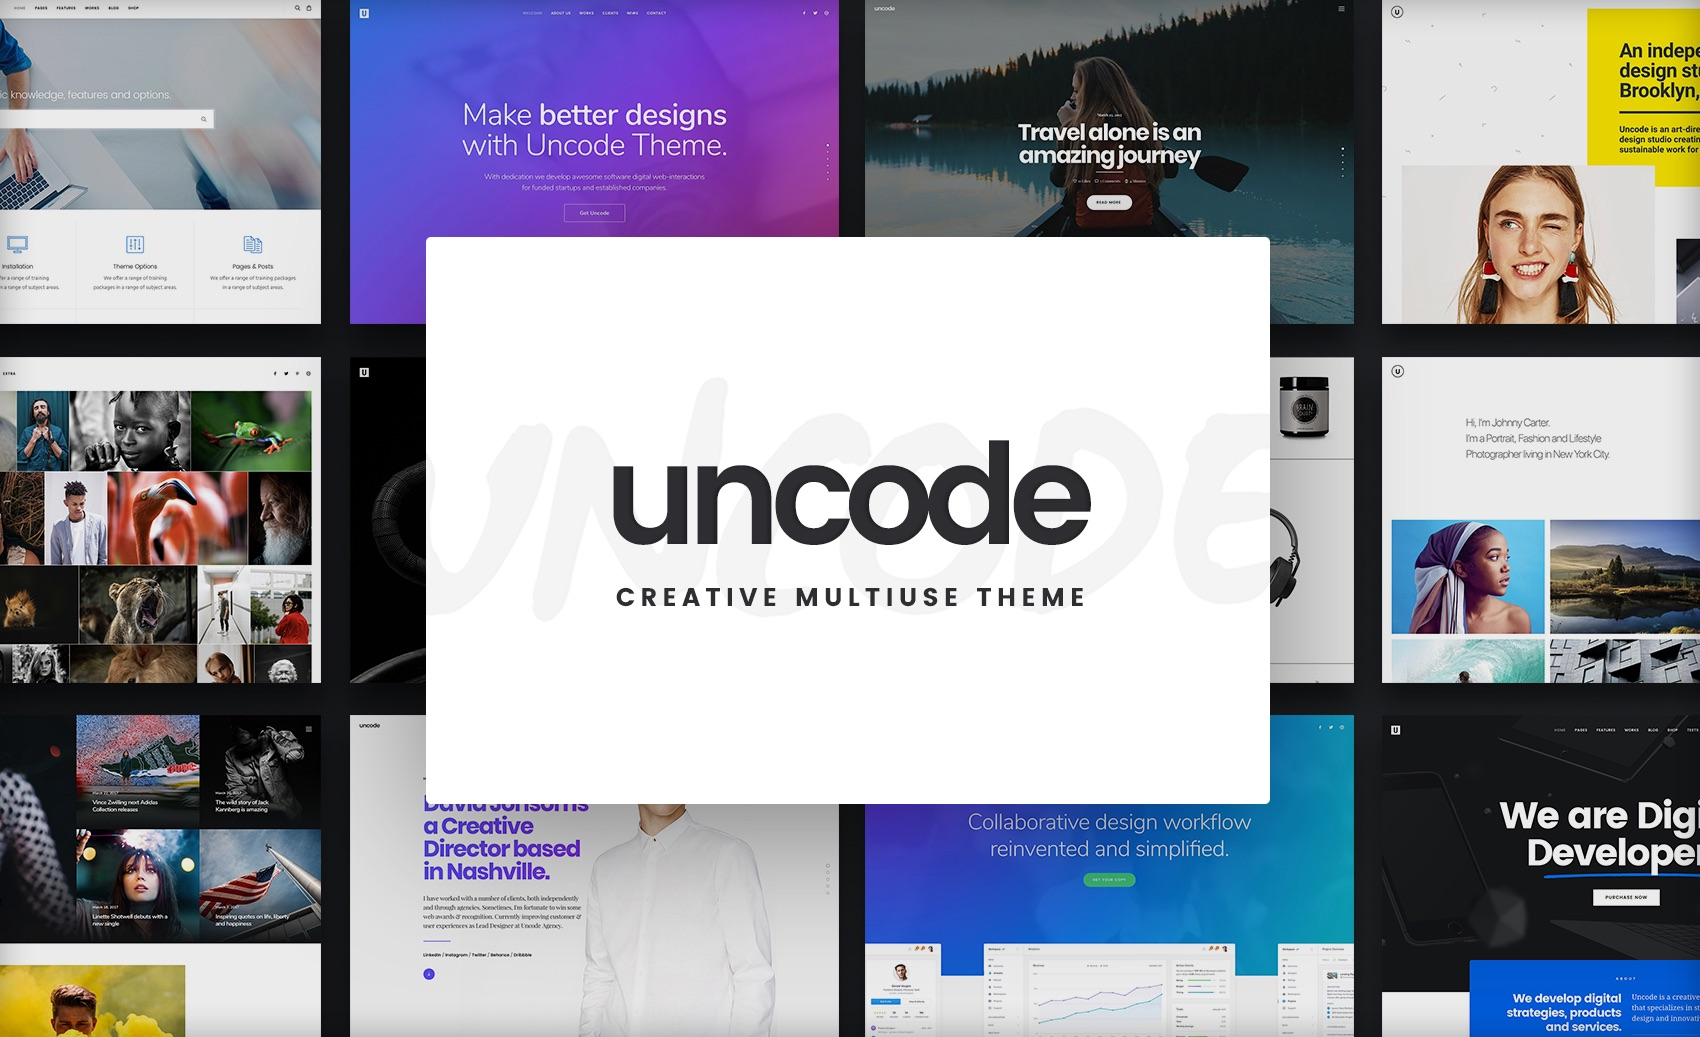 Web Tools & Services - Uncode